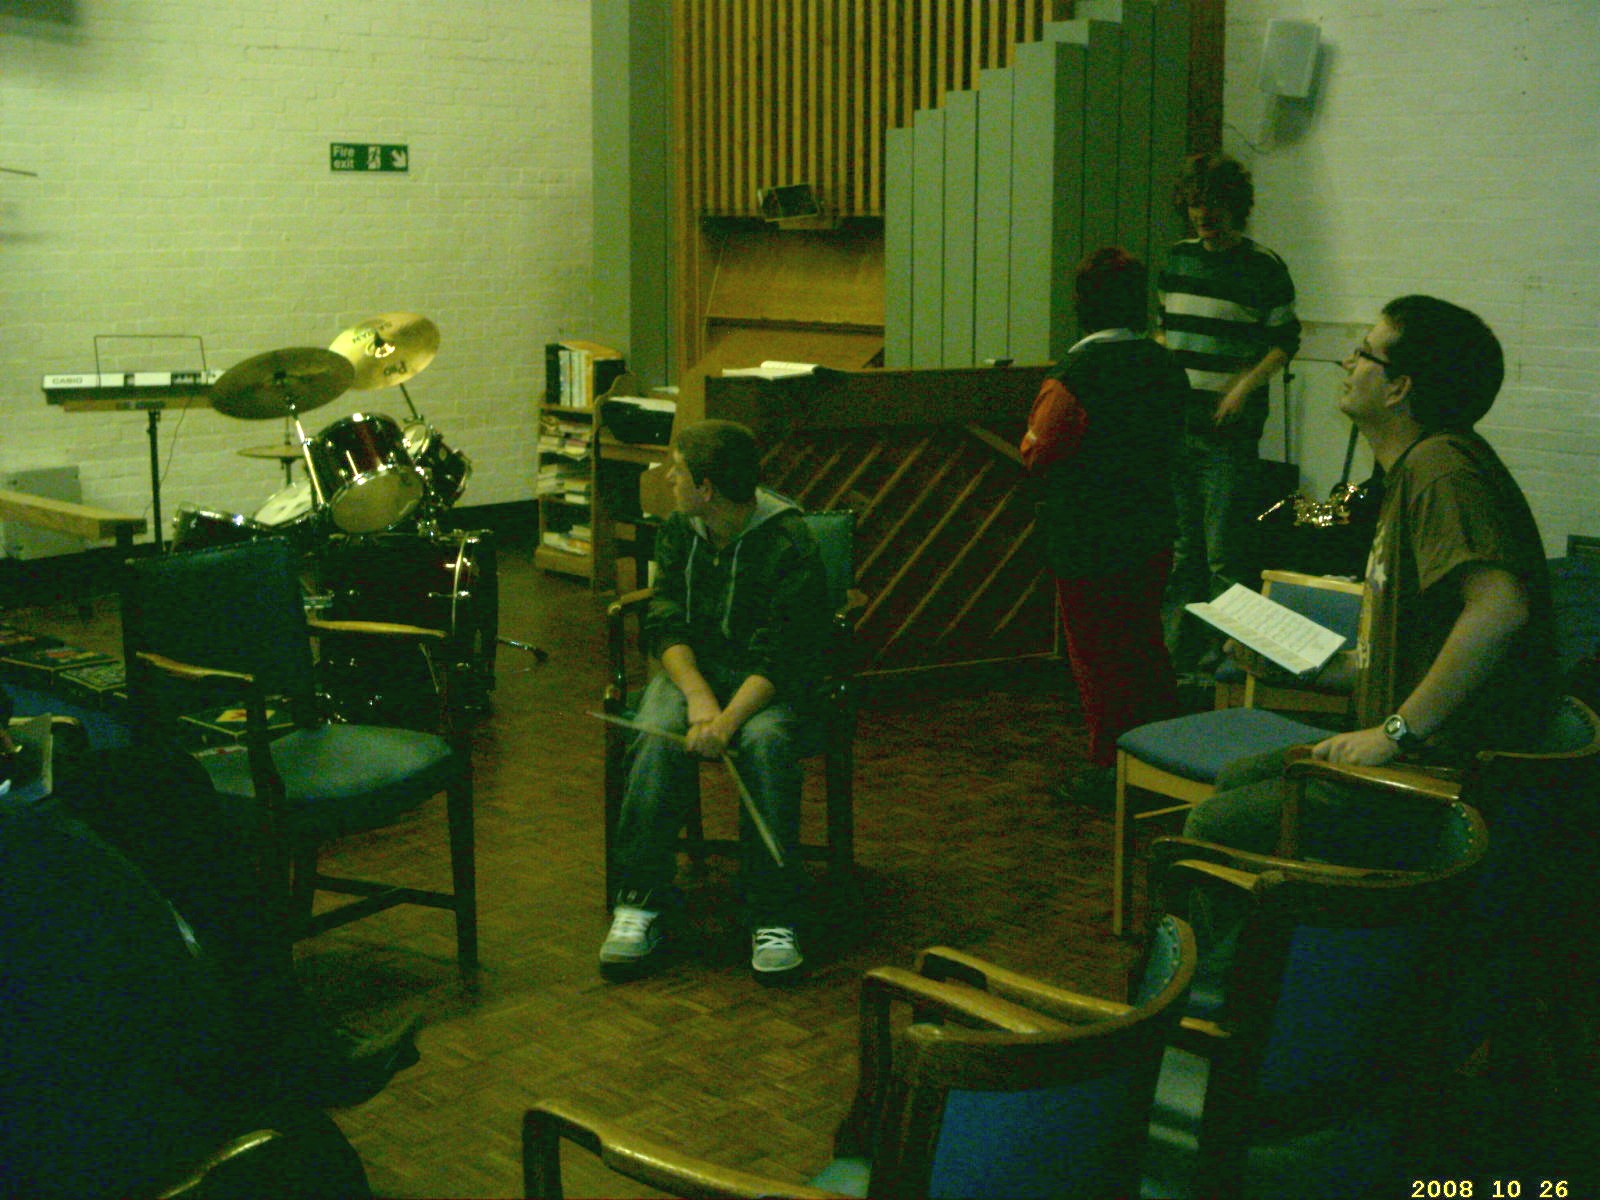 Members preparing for rehearsal